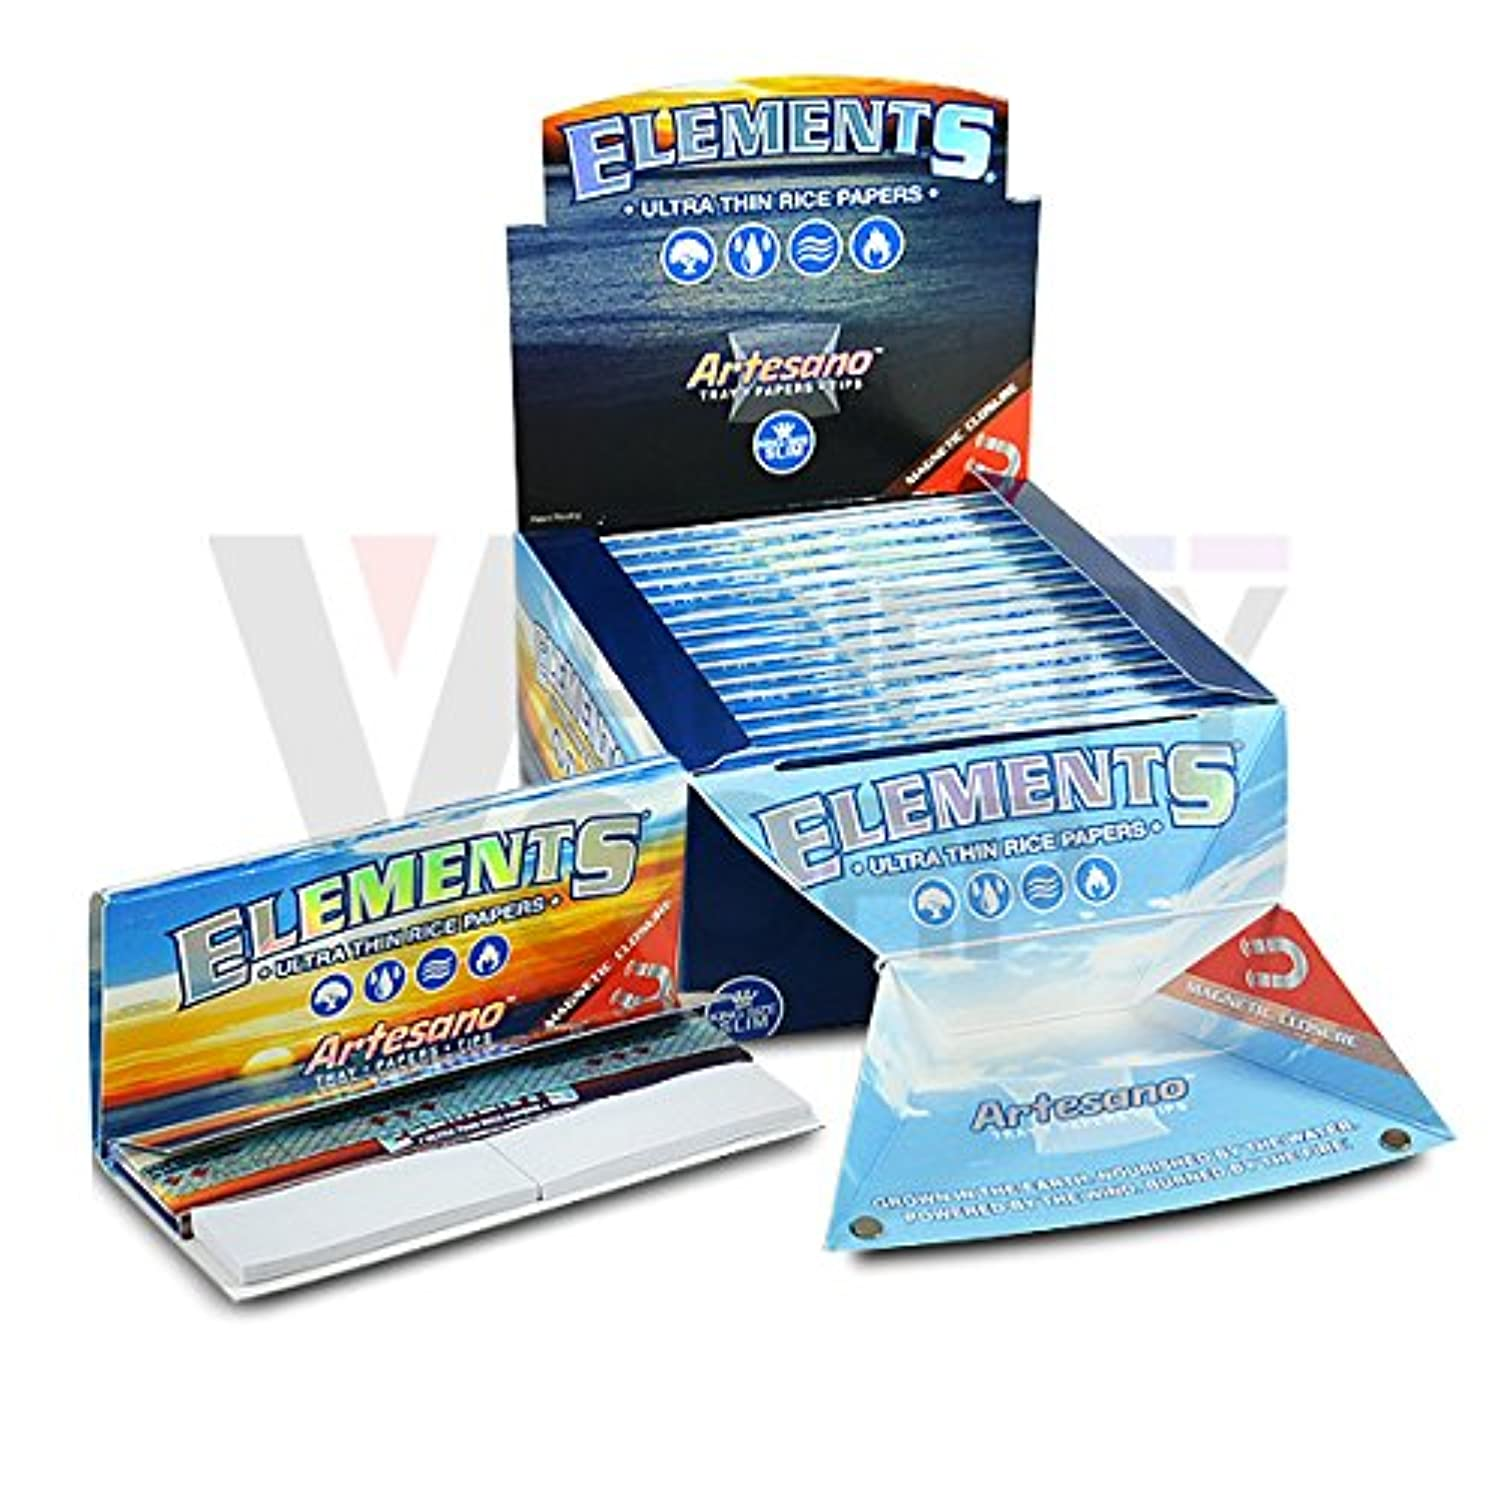 Elements King Size Ultra Thin Rice Papers 15/box